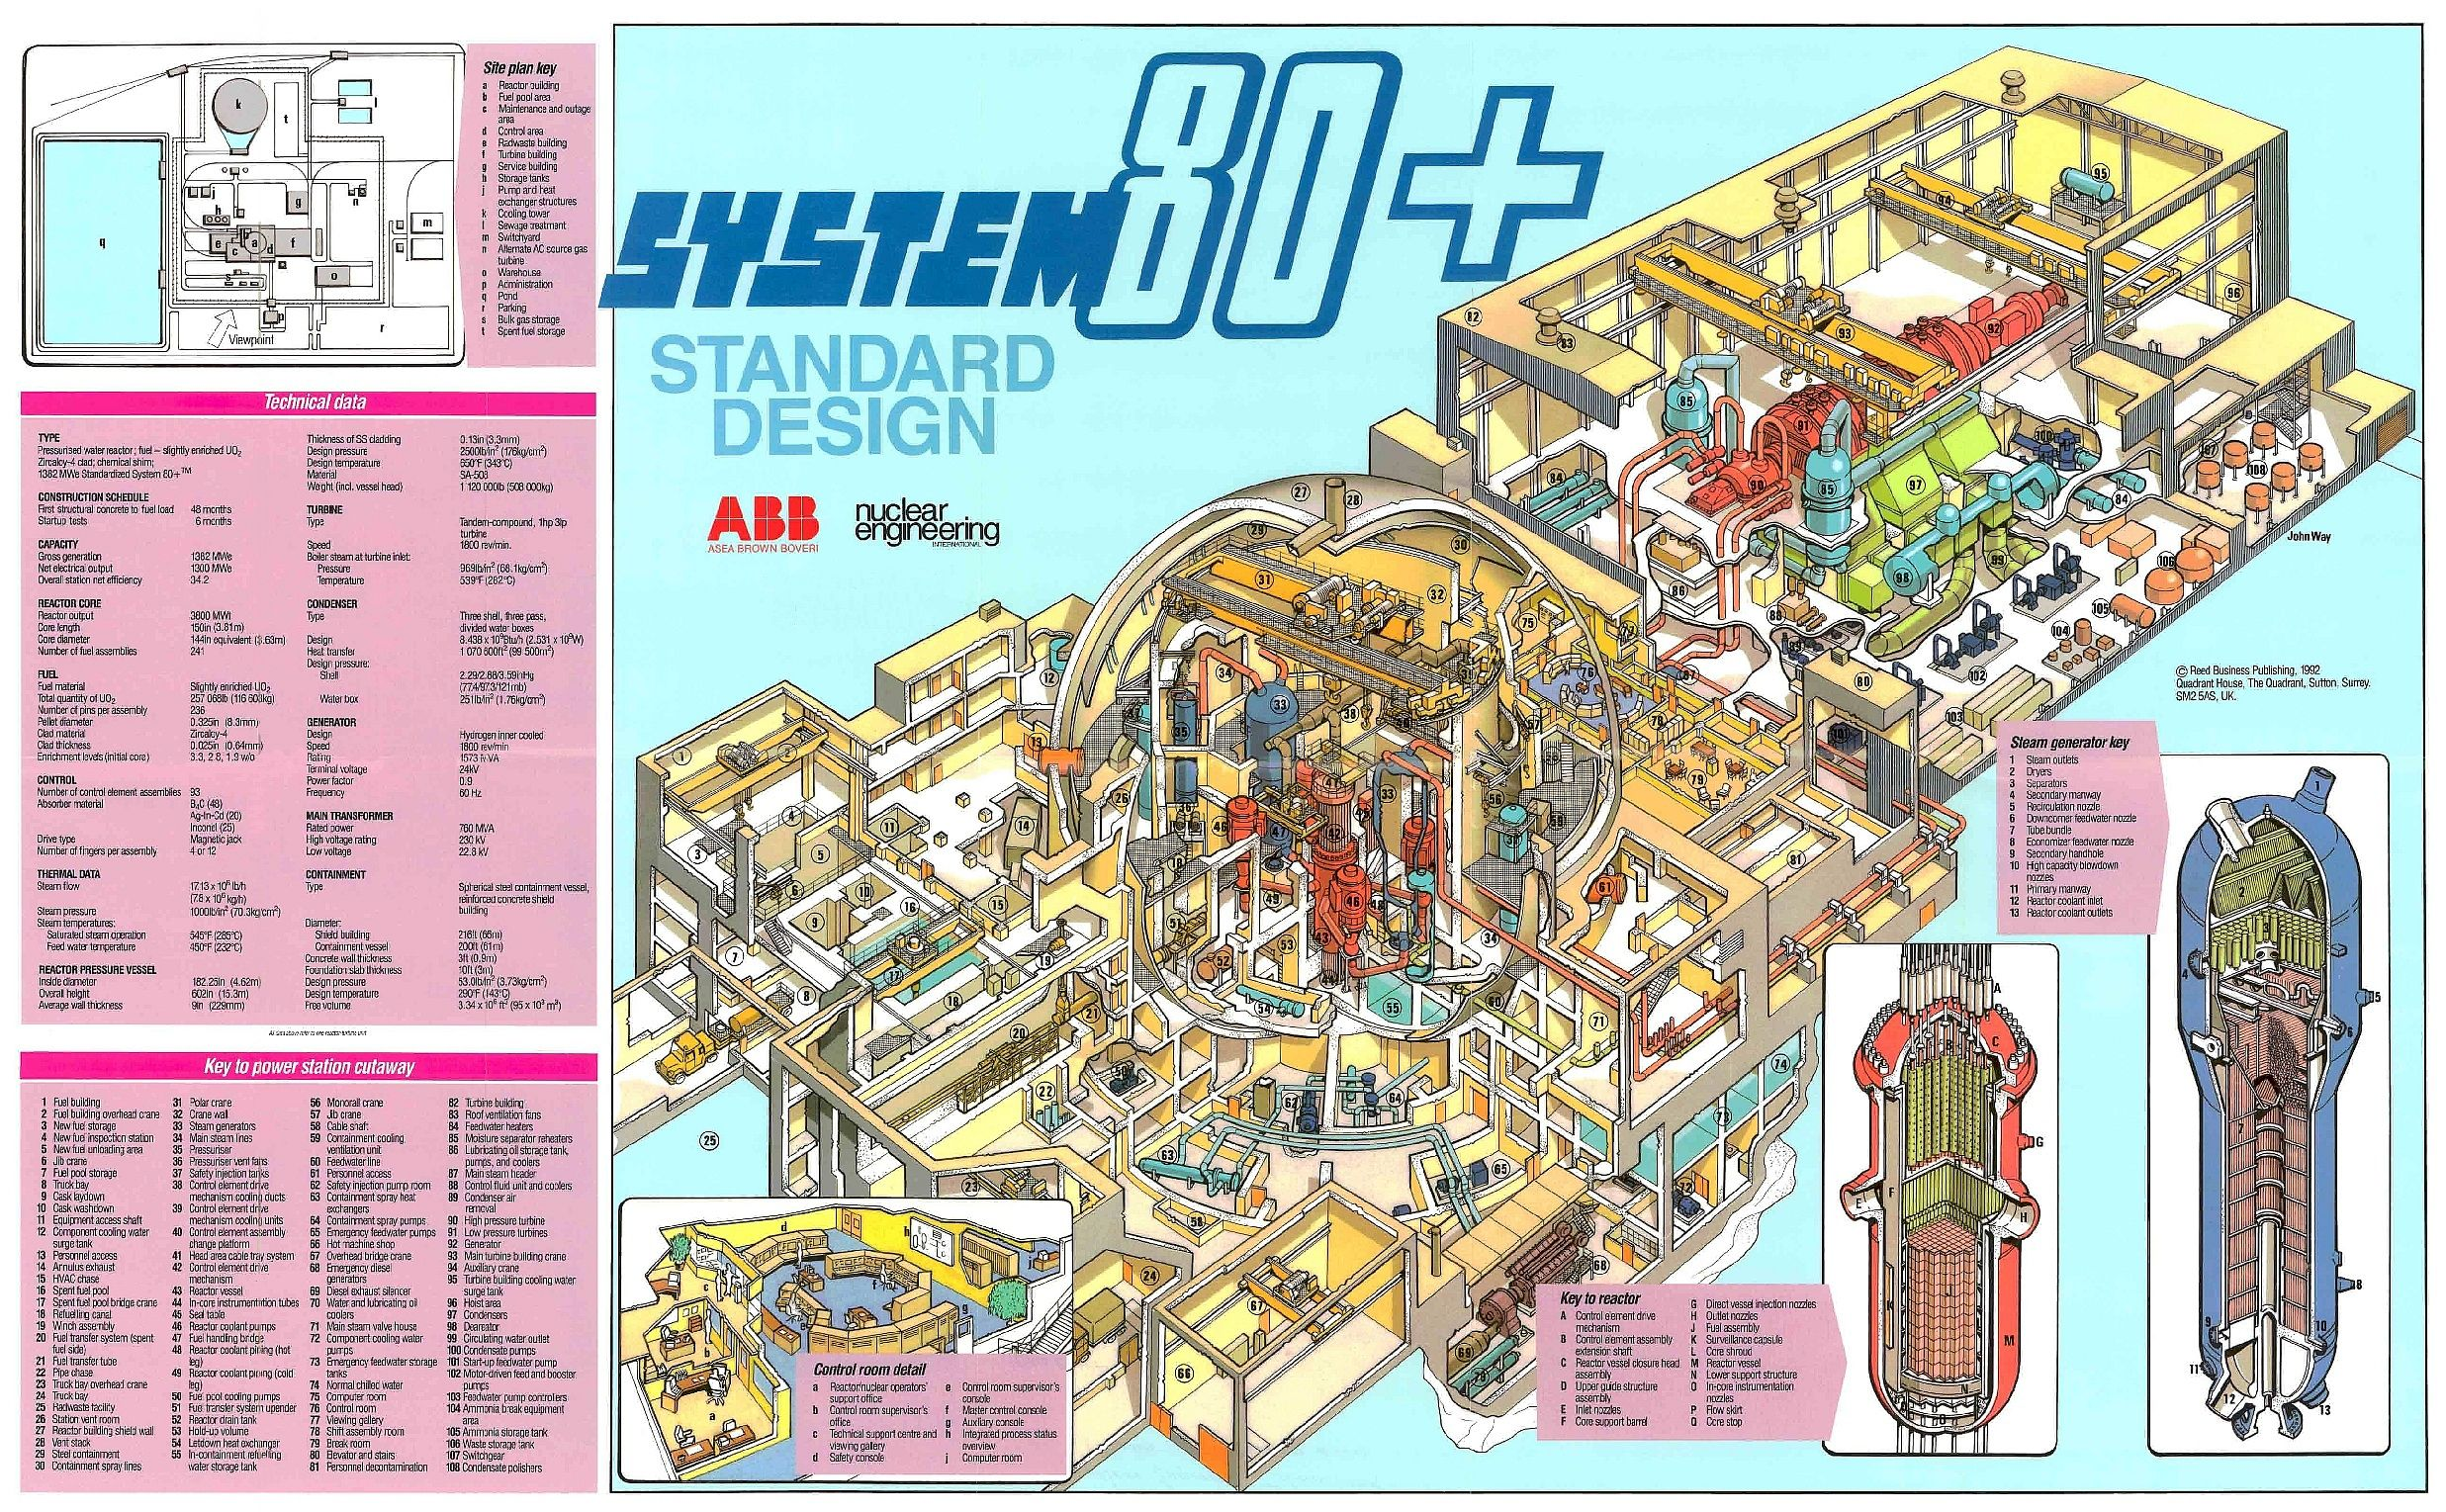 System 80 is a pressurized water reactor design by bustion